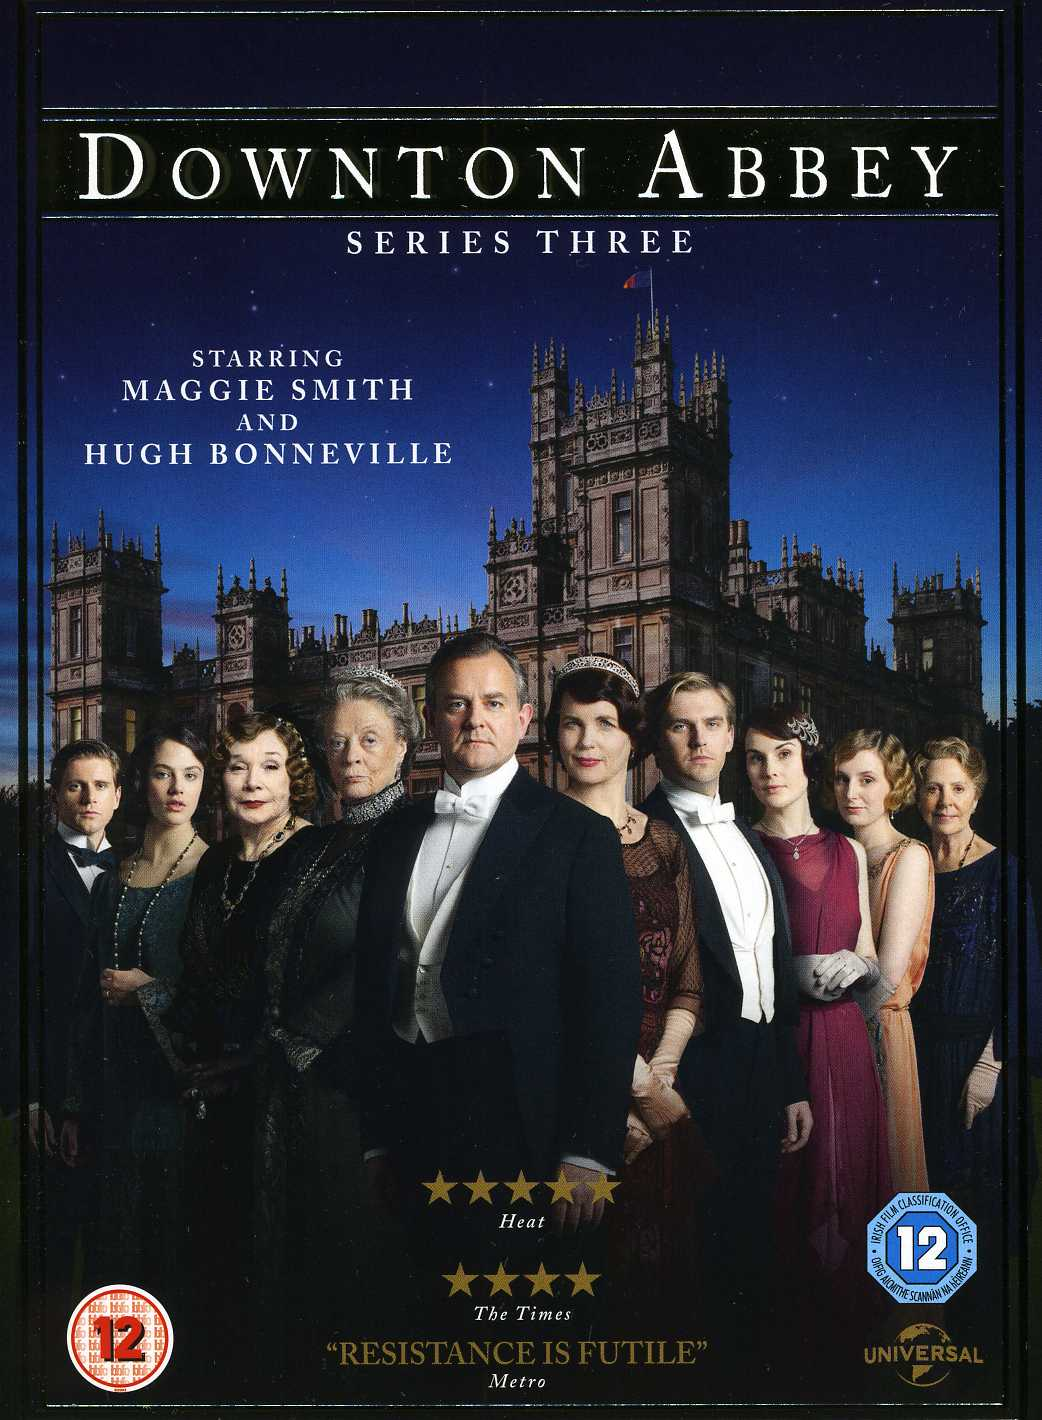 Downton Abbey  Series 3 - Fox - Film - UNIVERSAL PICTURES - 5050582916423 - November 5, 2012